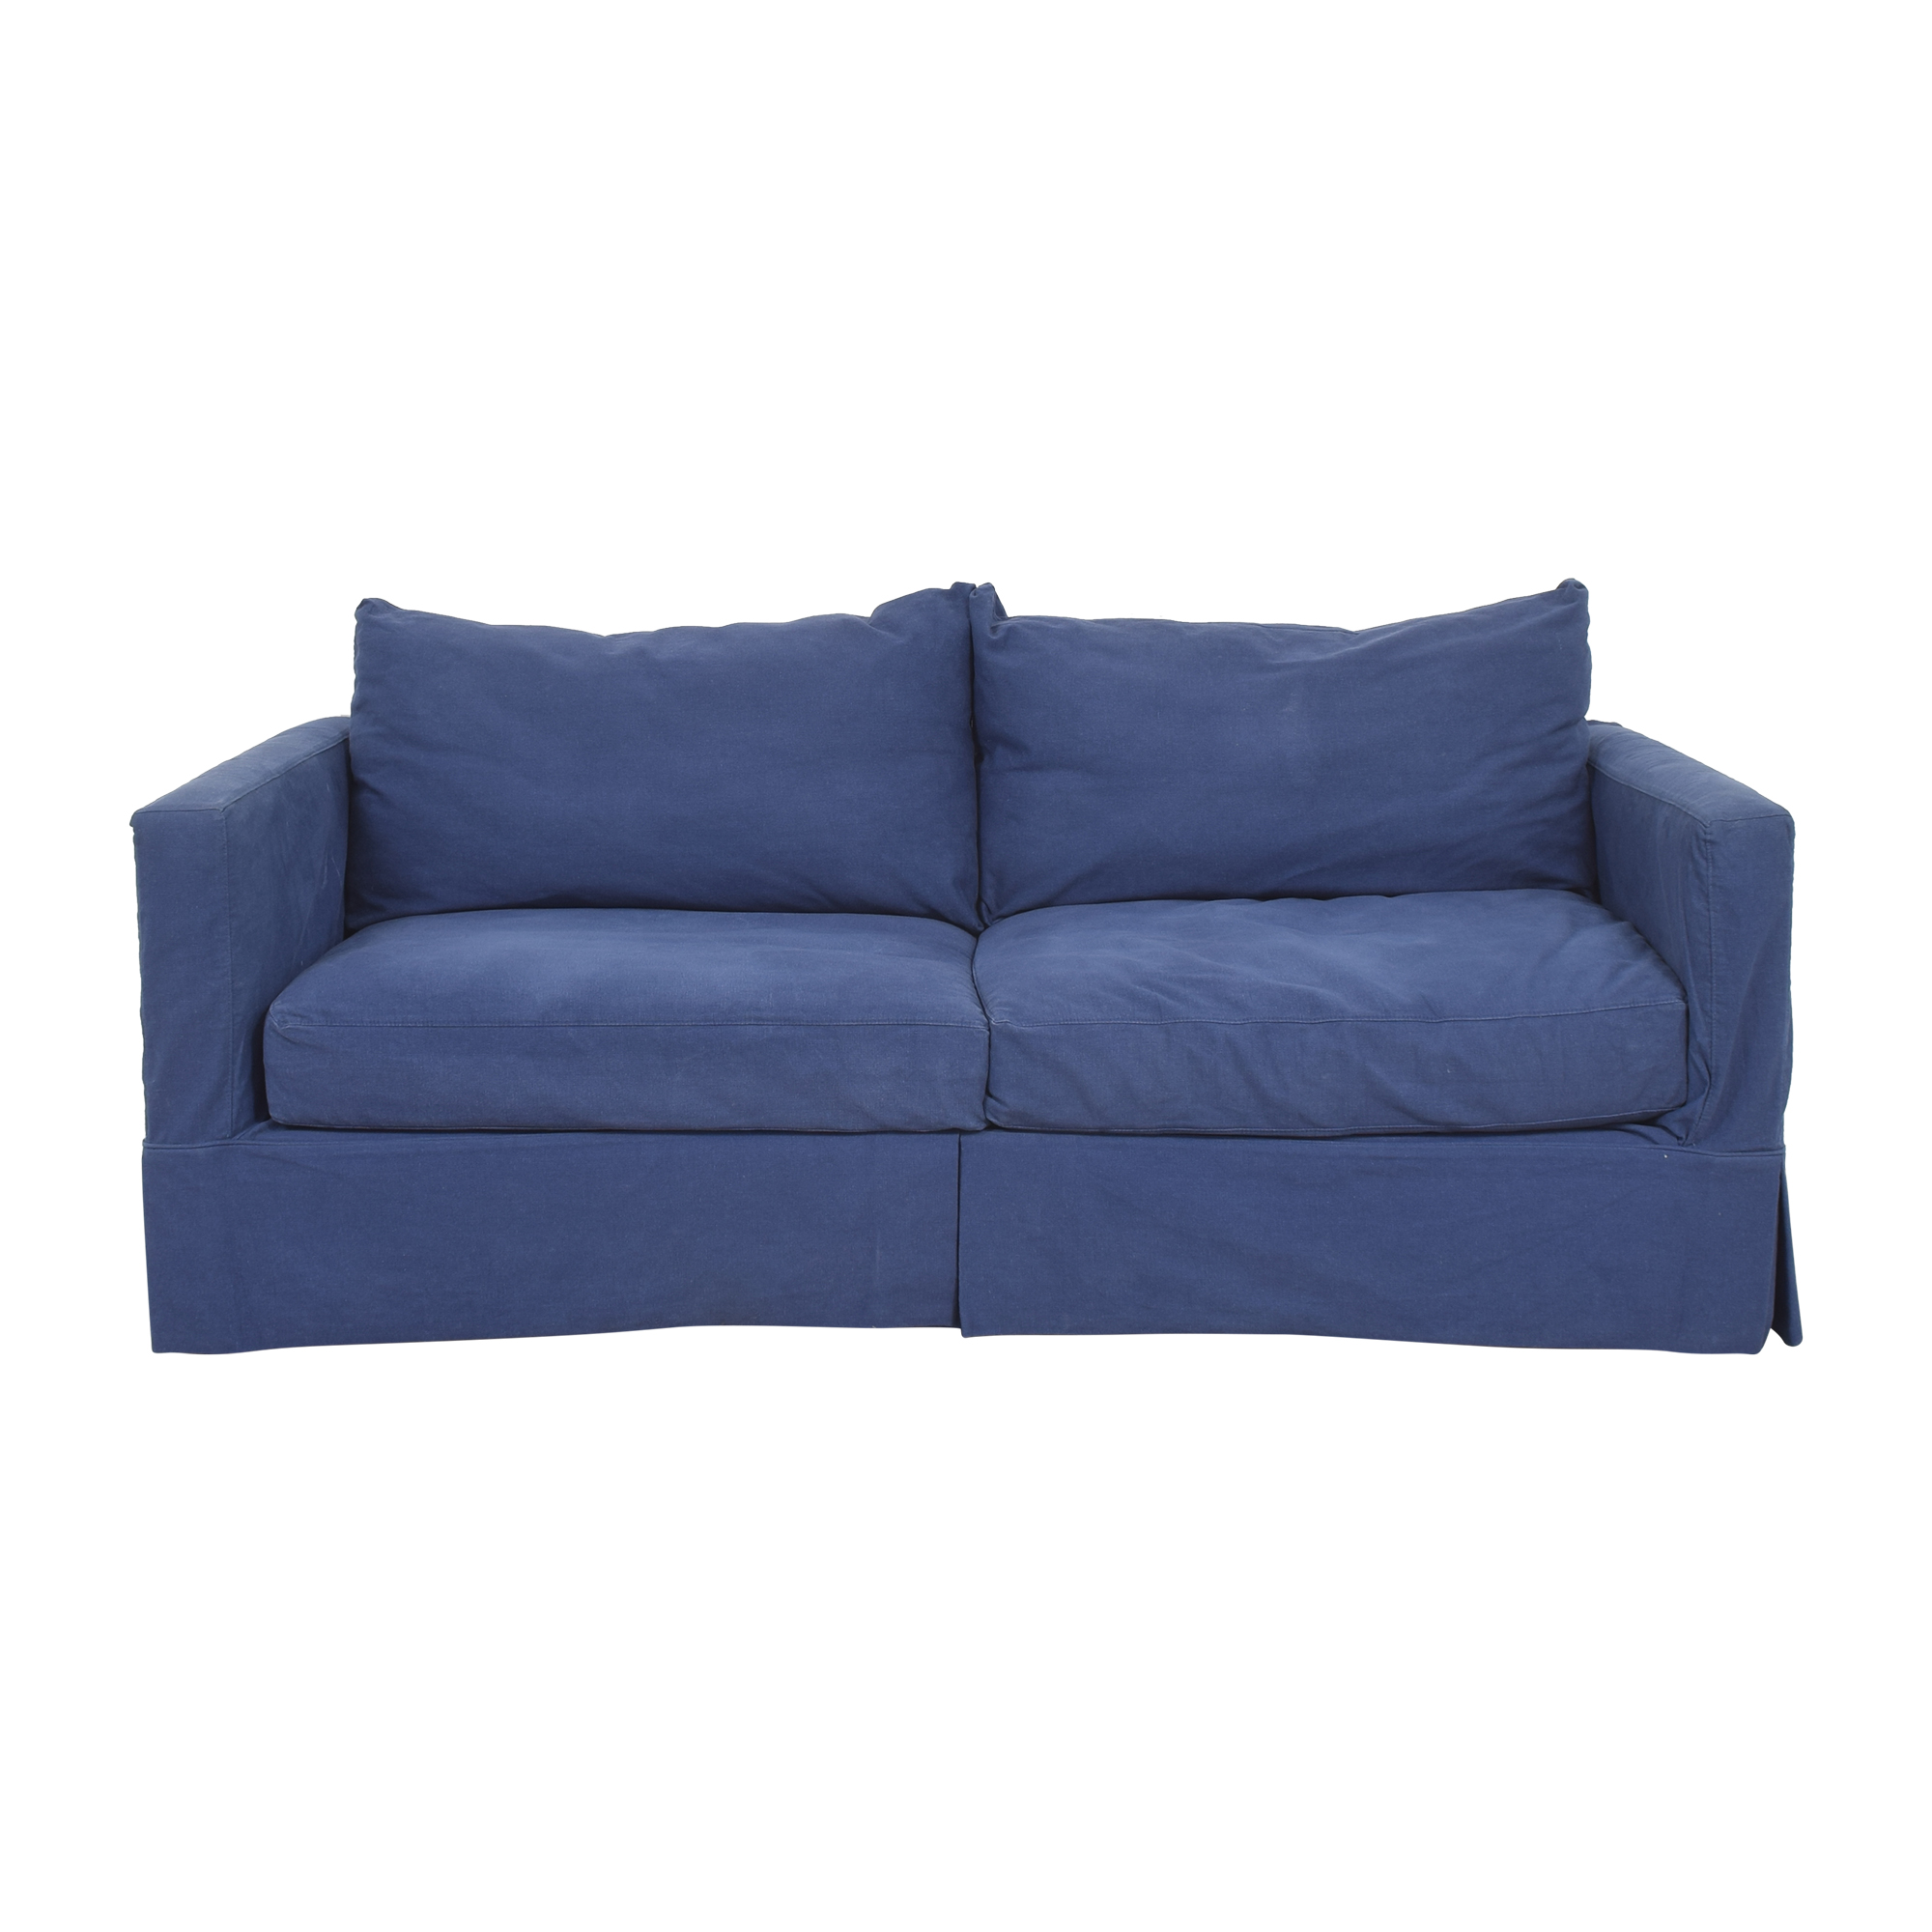 Crate & Barrel Crate & Barrel Willow Modern Slipcovered Sofa Sofas